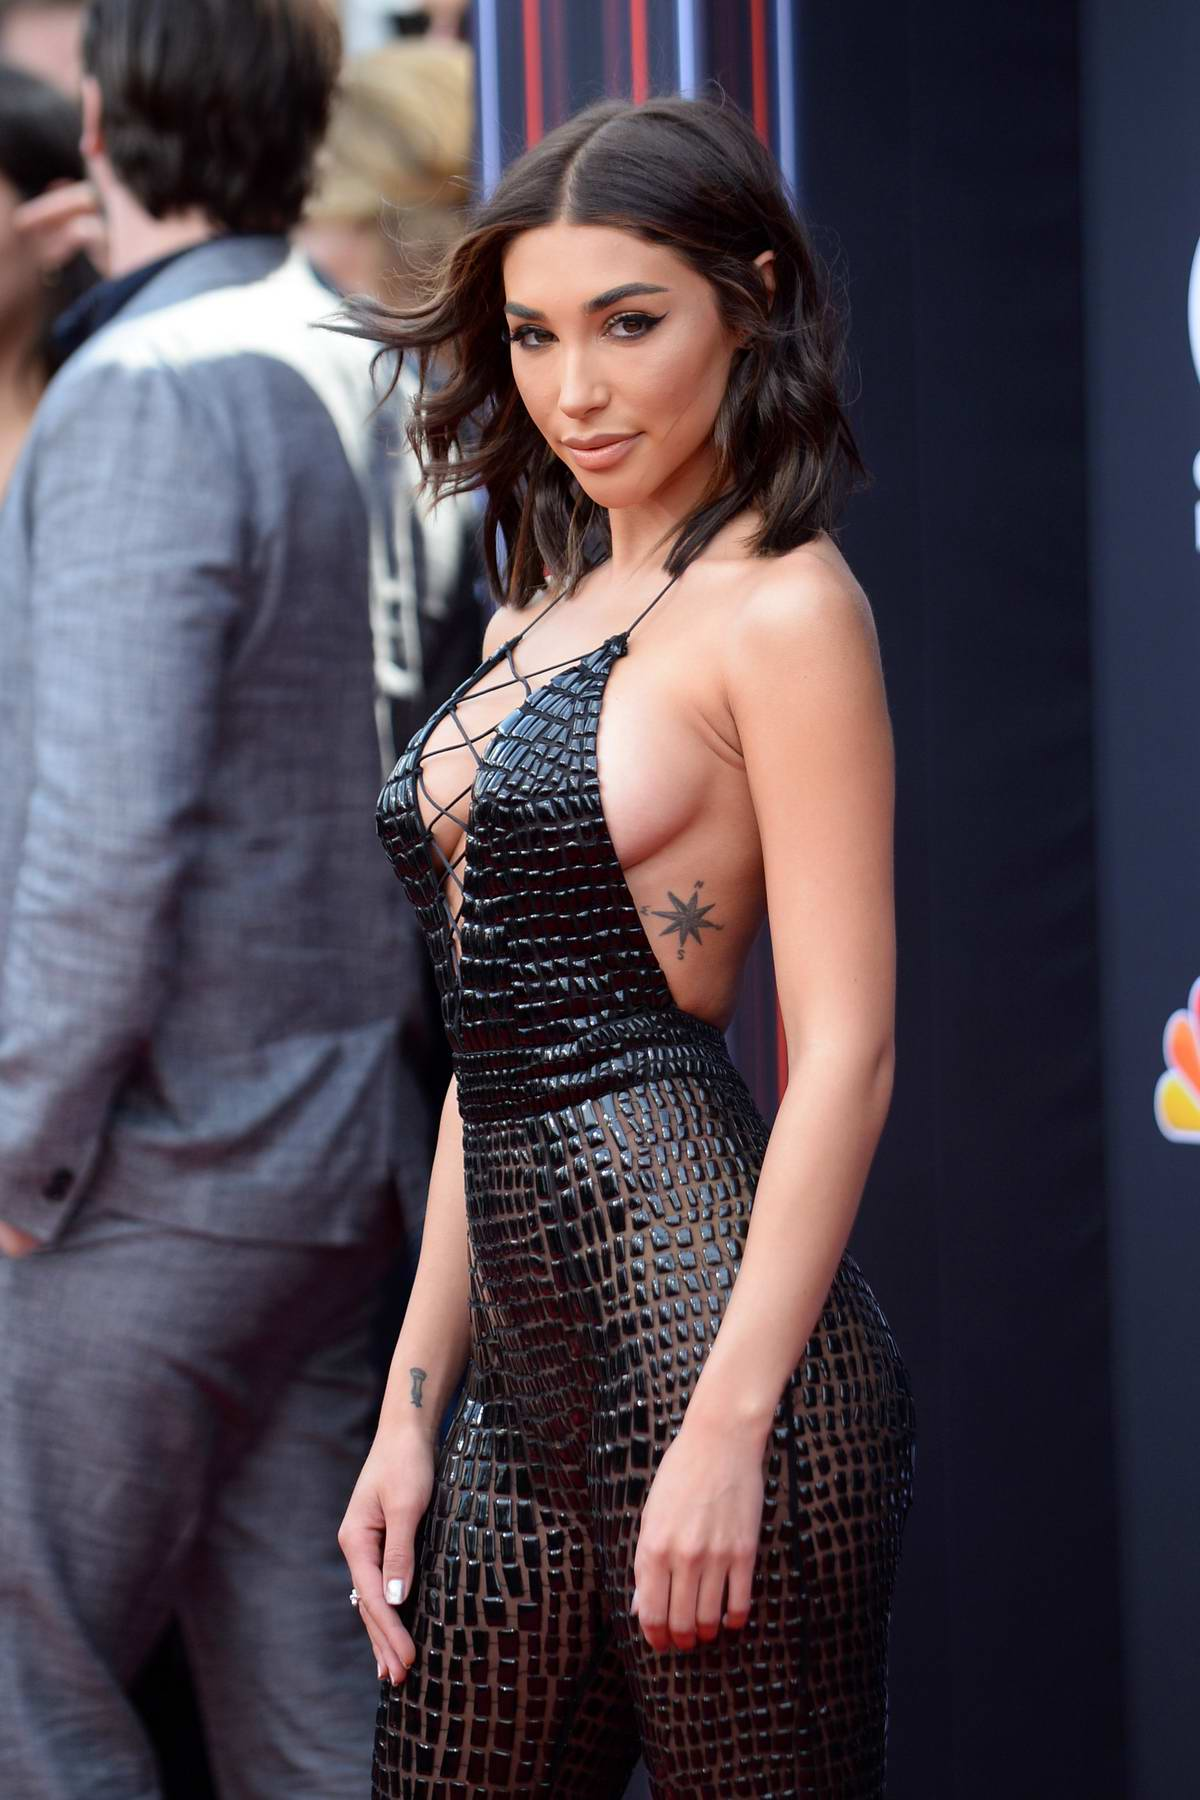 Chantel Jeffries attends the 2018 Billboard Music Awards at MGM Grand Garden in Las Vegas, Nevada